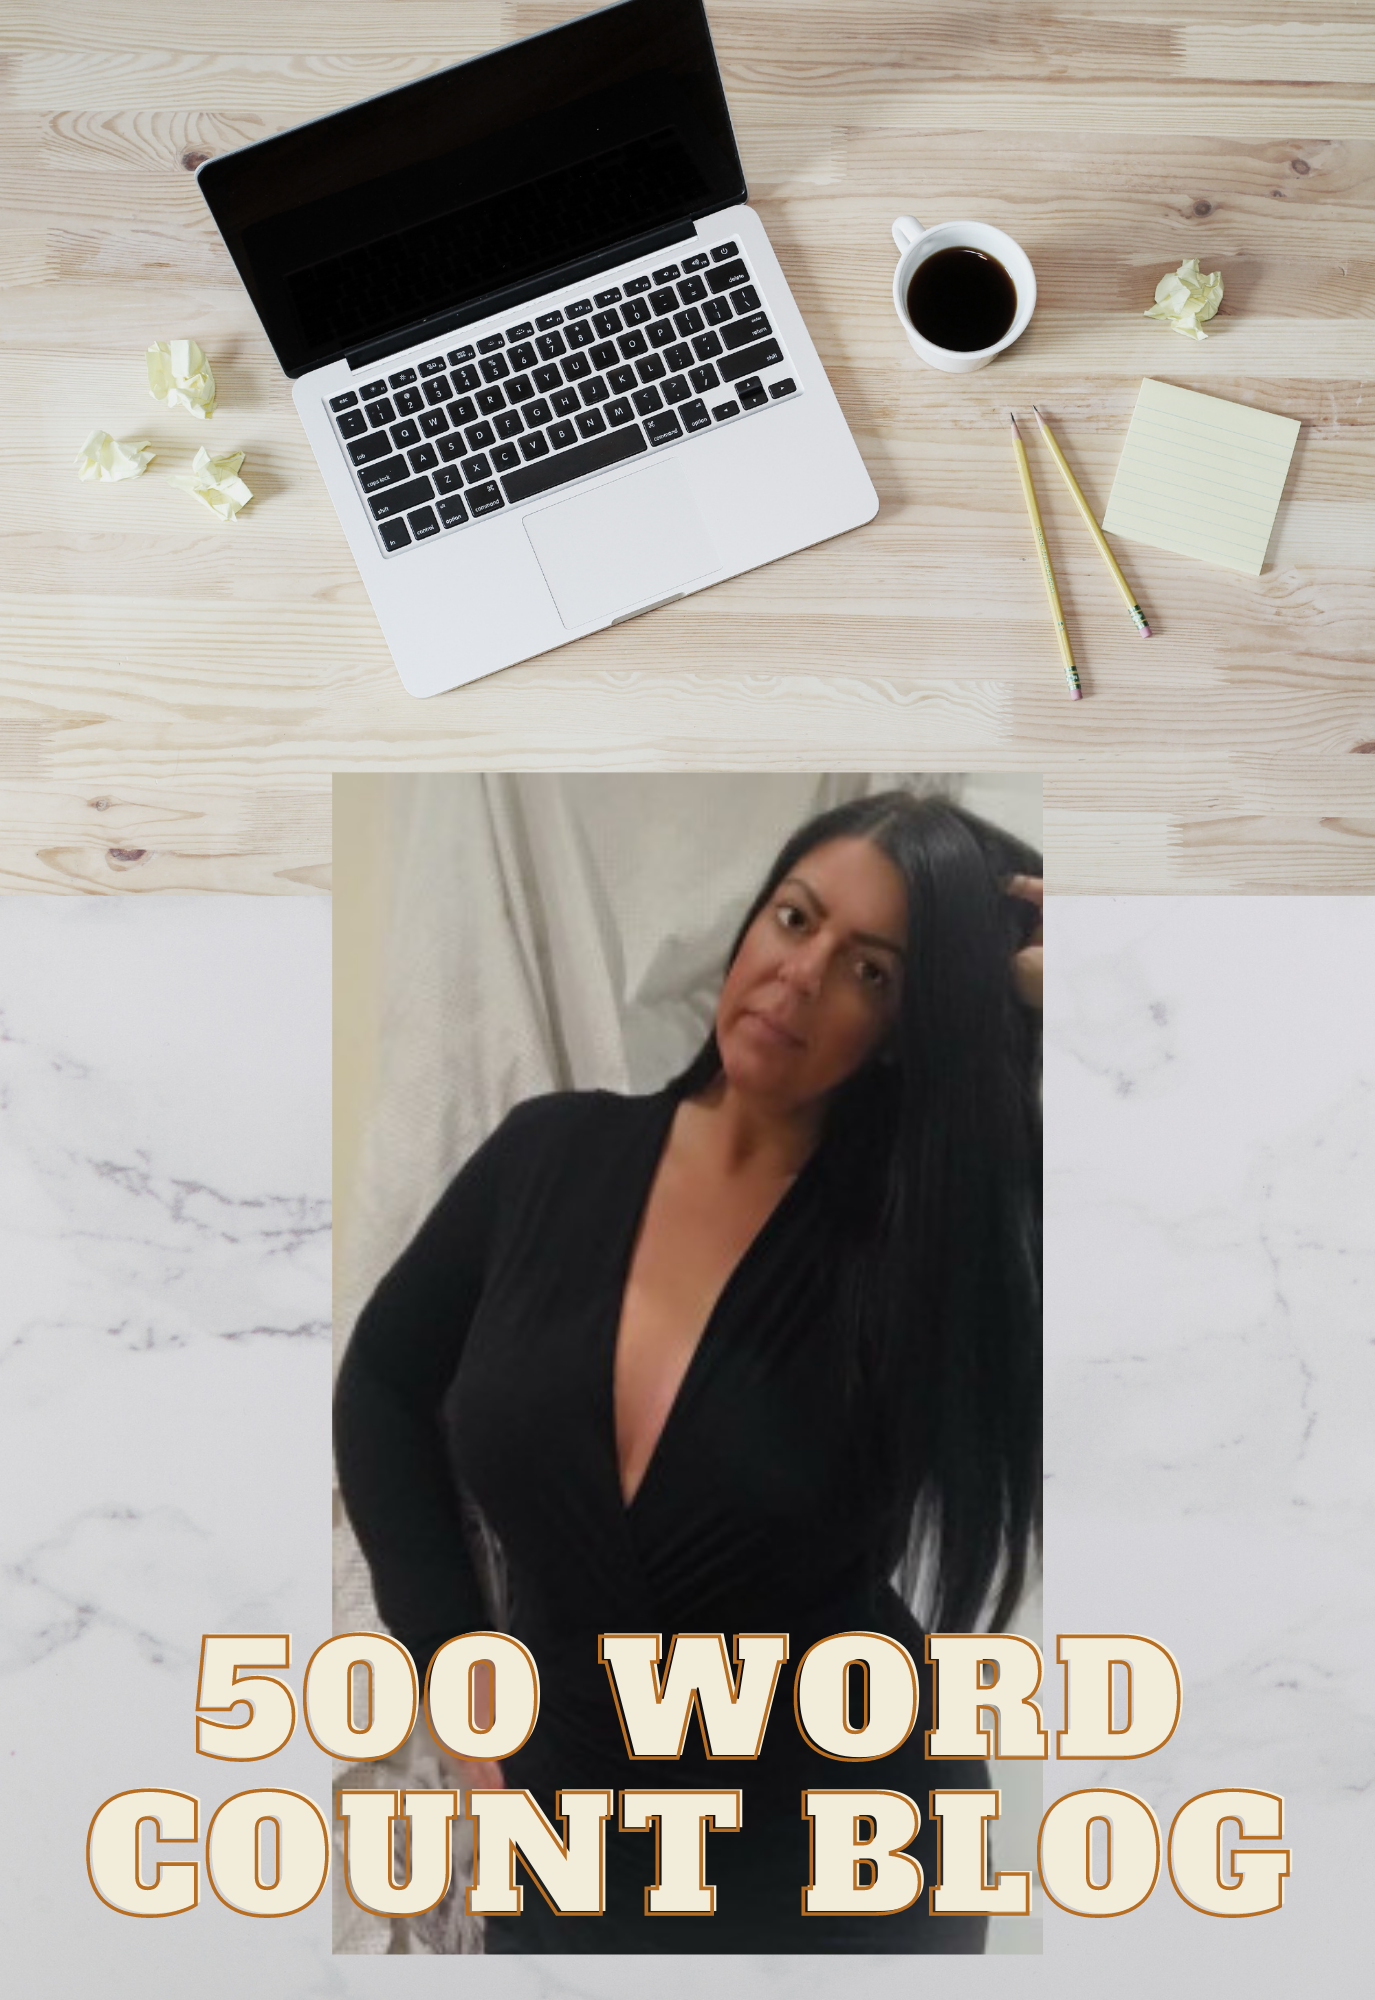 I will provide you with a 500 word count blog of your choice